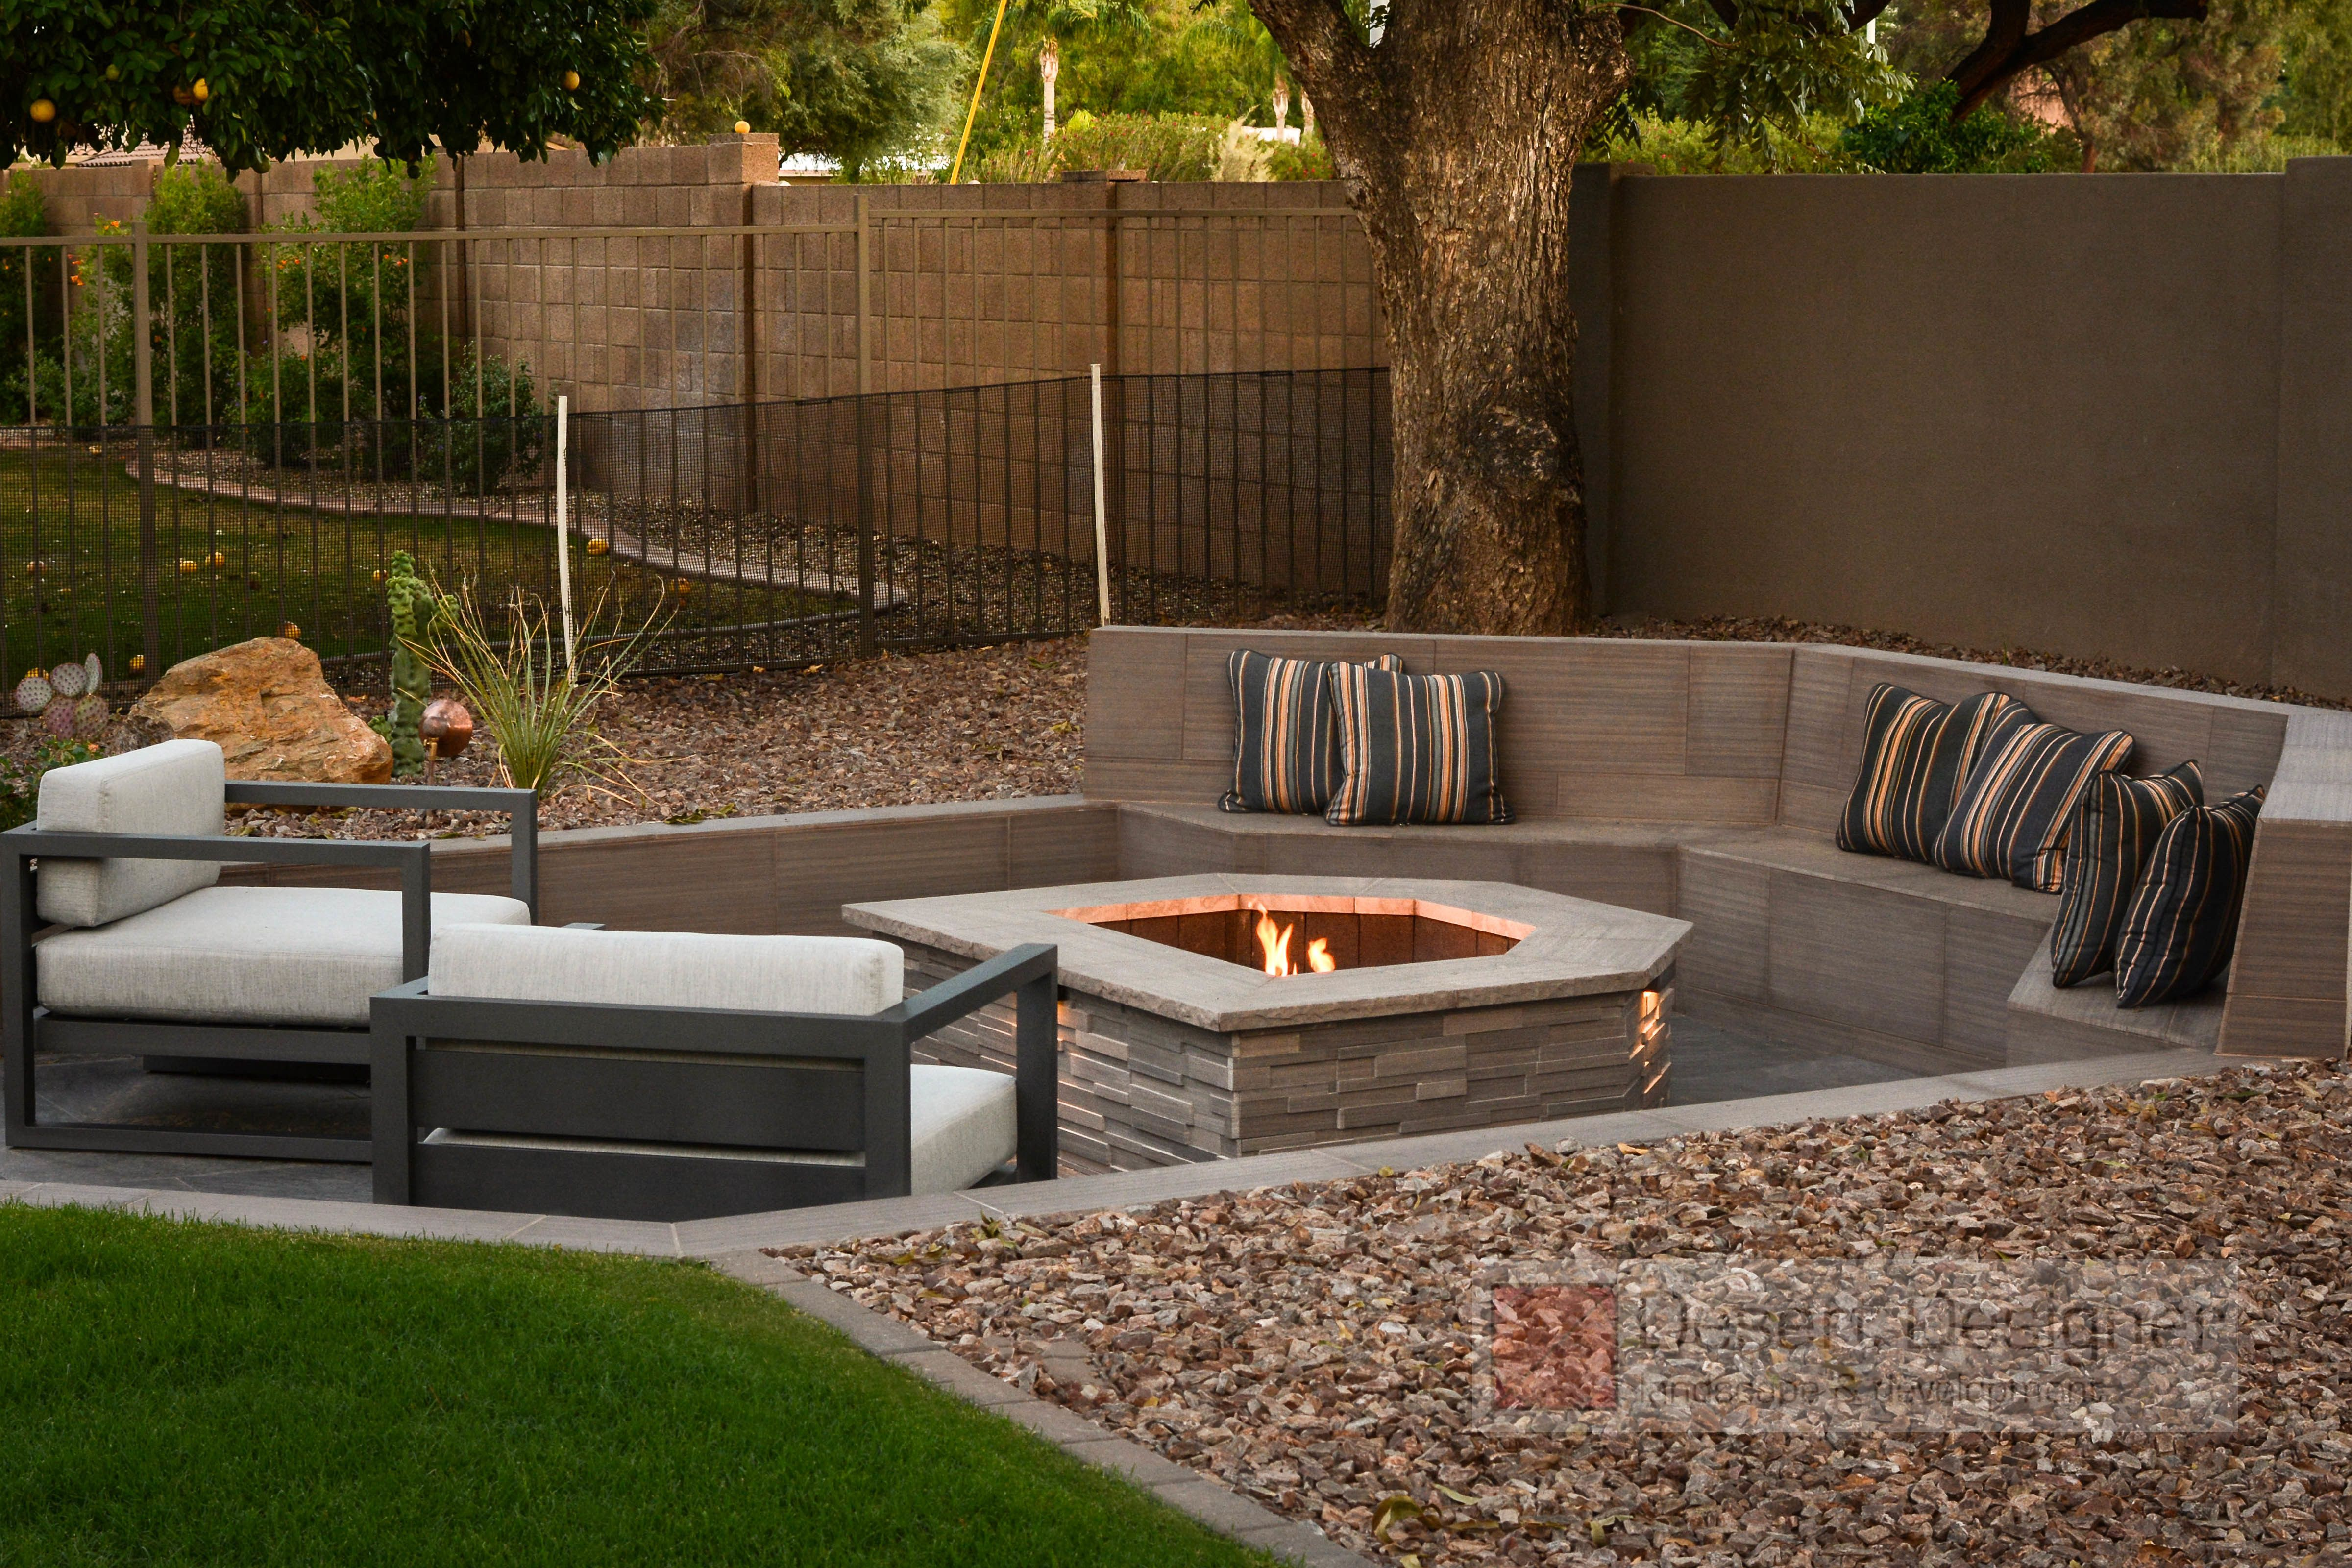 Sunken Modern Fire Pit with Seating   Fire pit backyard ...